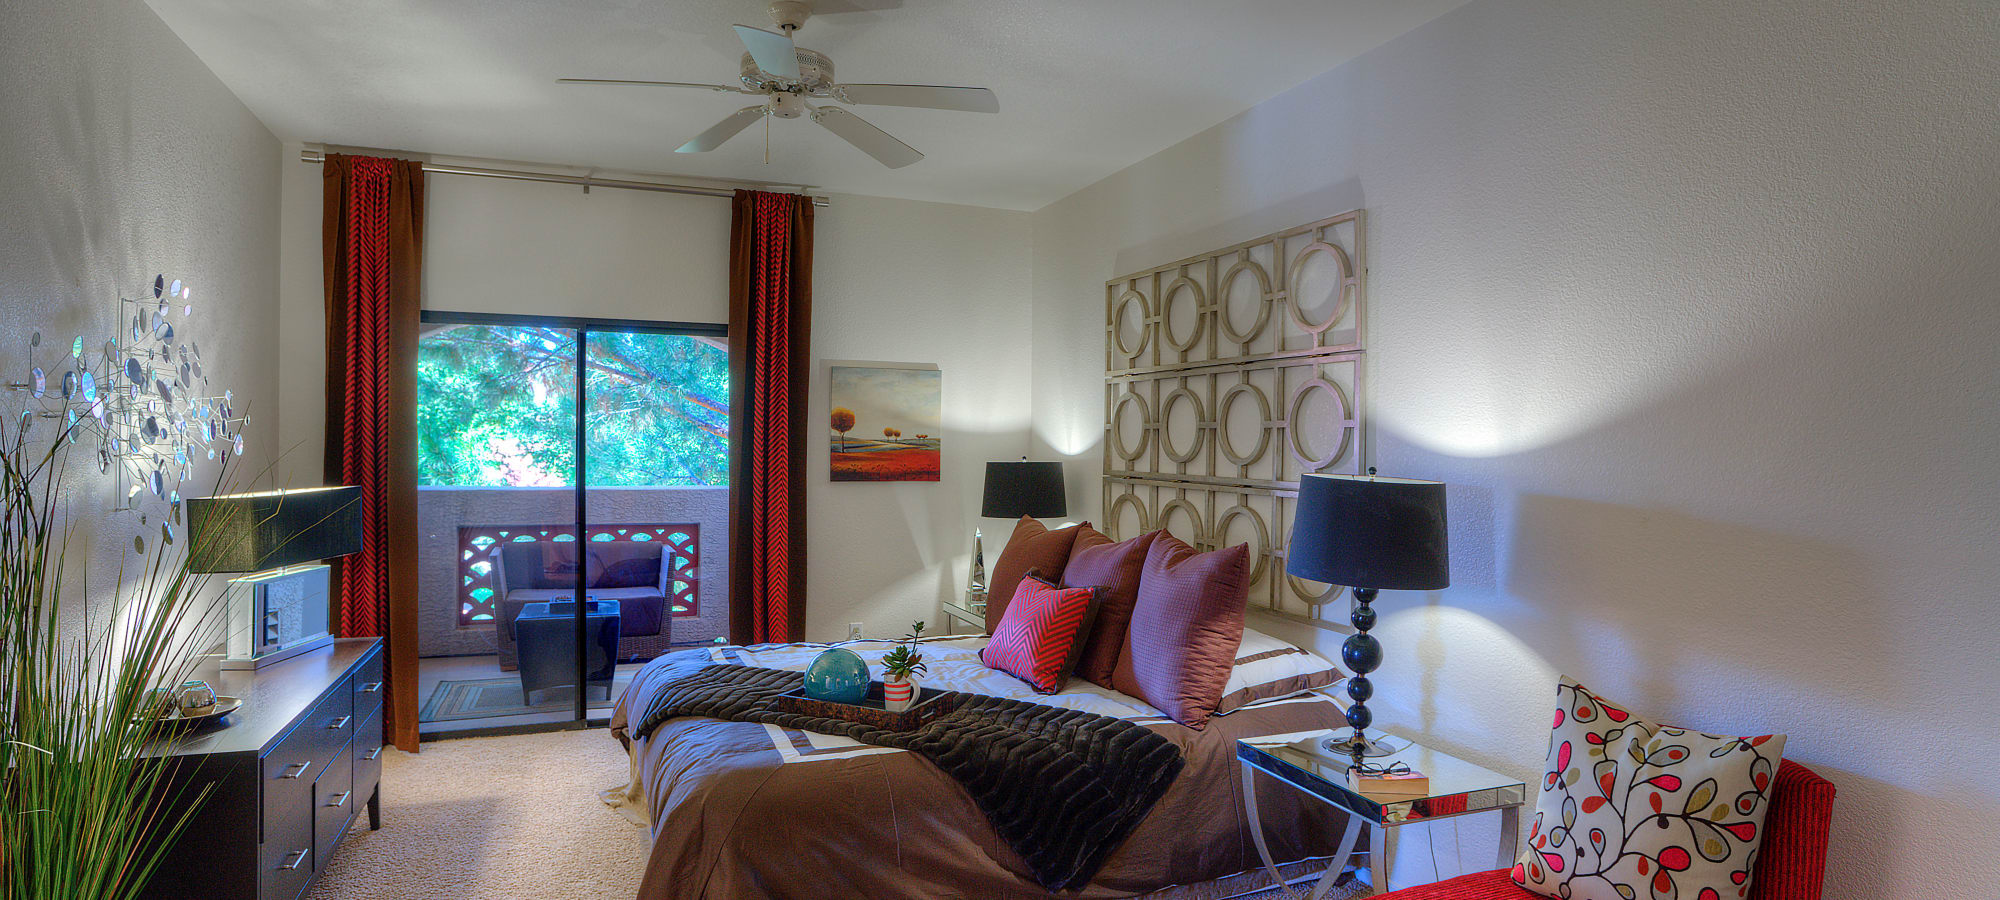 Master bedroom with private balcony at San Cervantes in Chandler, Arizona